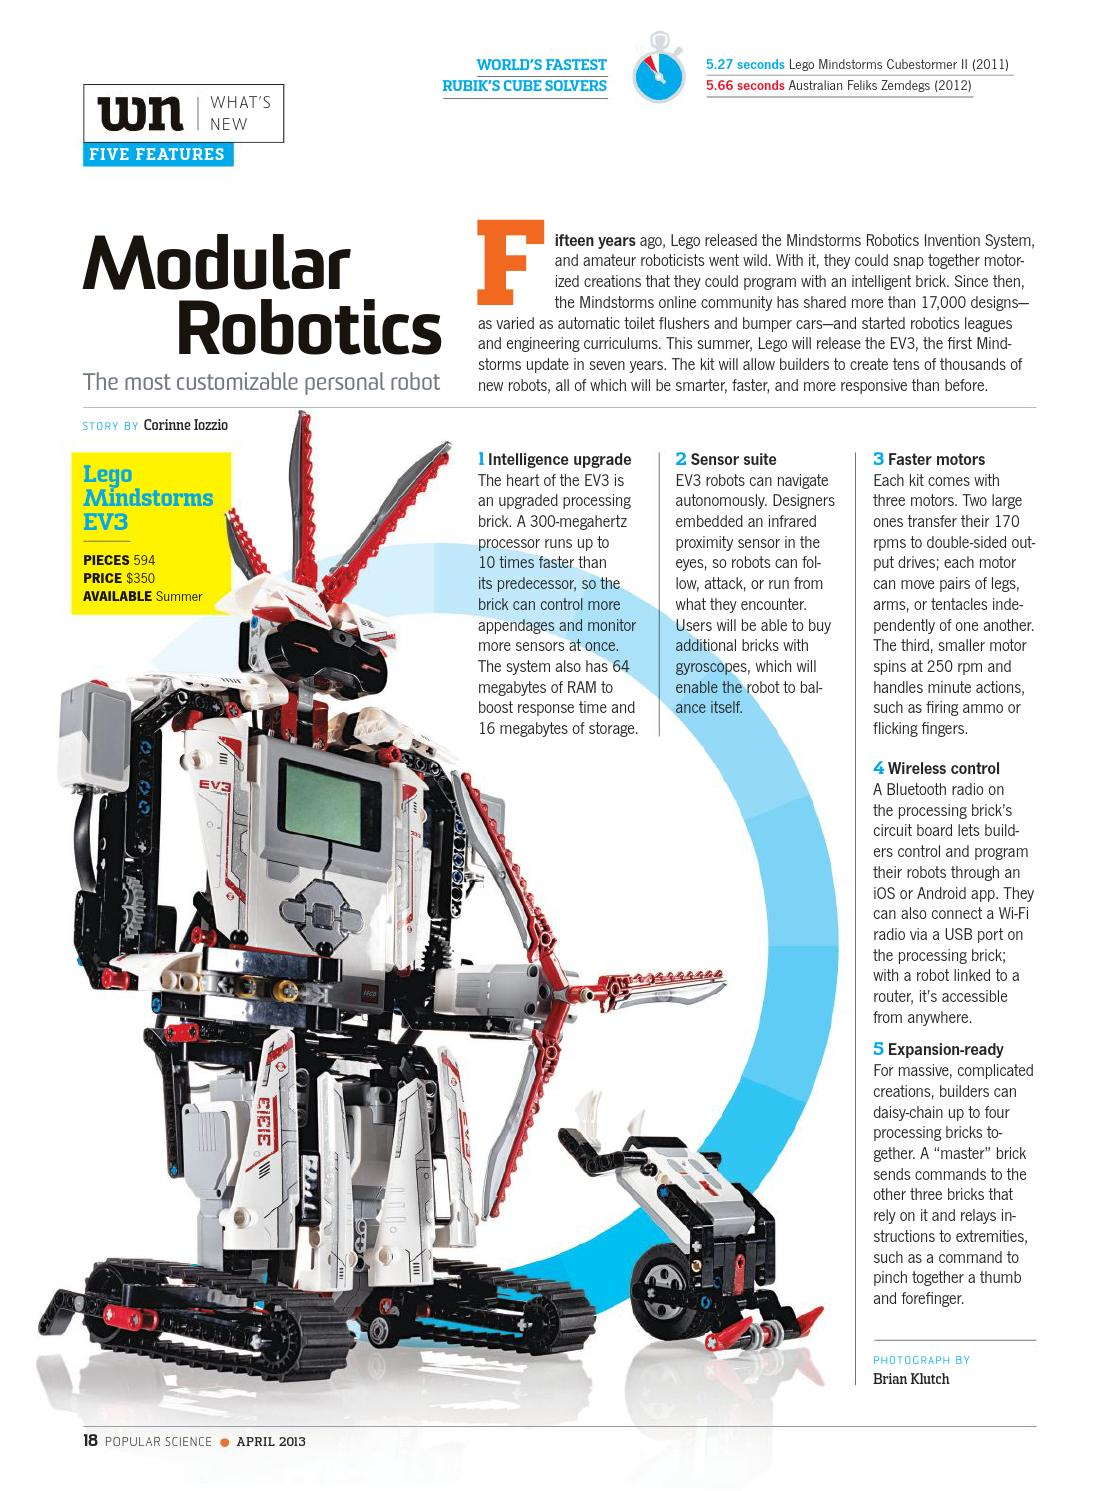 Popular science usa 2013 04 by Science and Technology - issuu